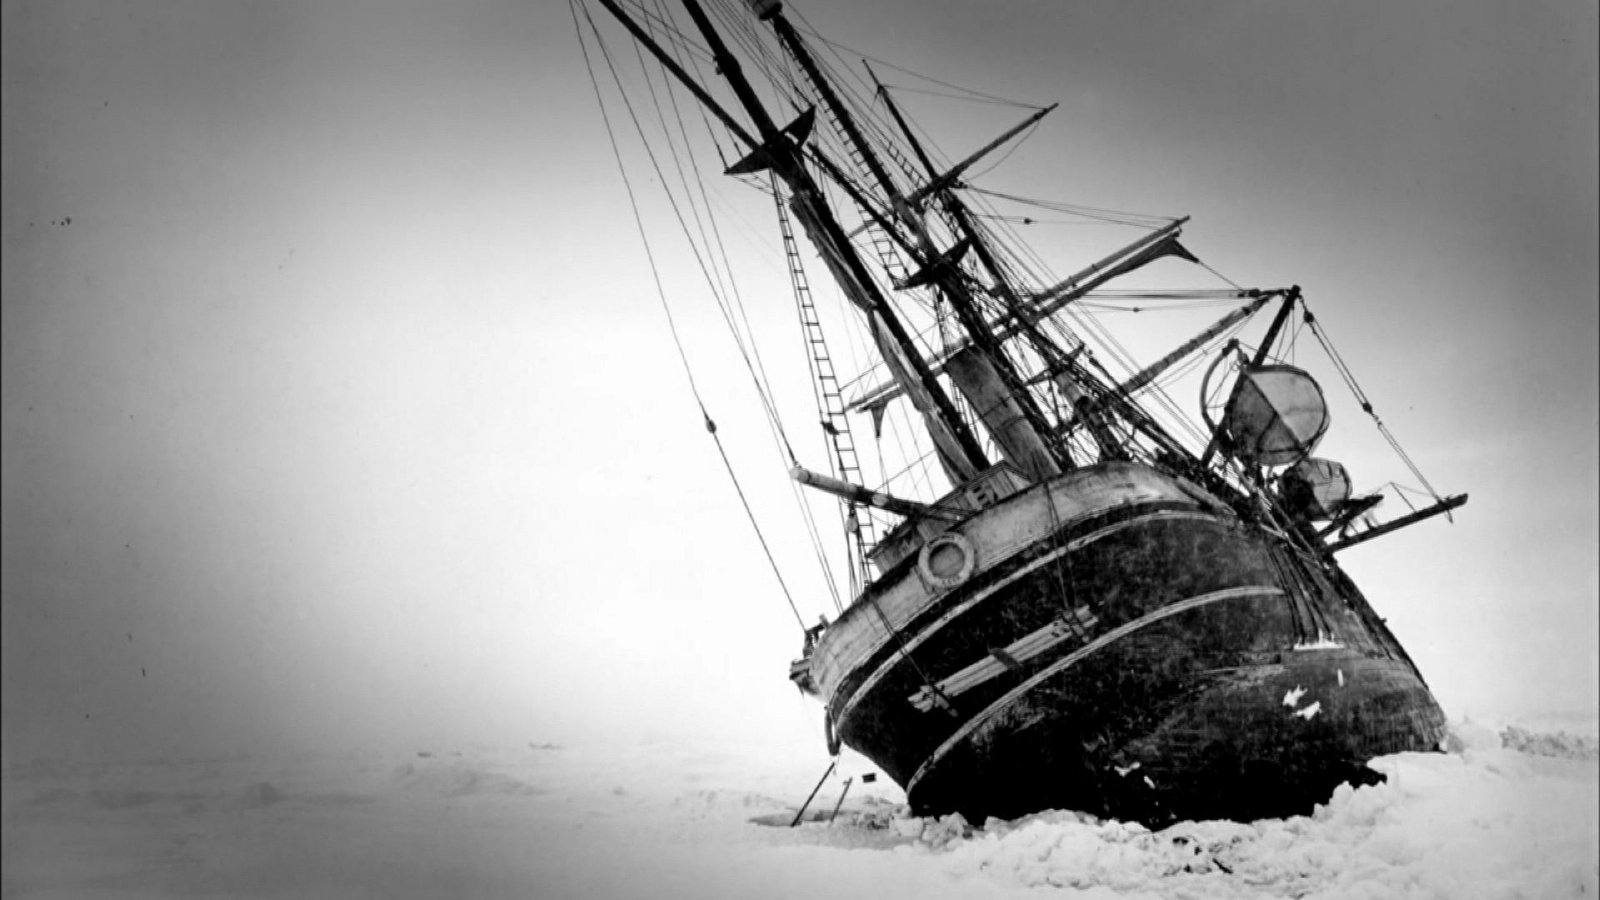 Chasing Shackleton - Episode 3